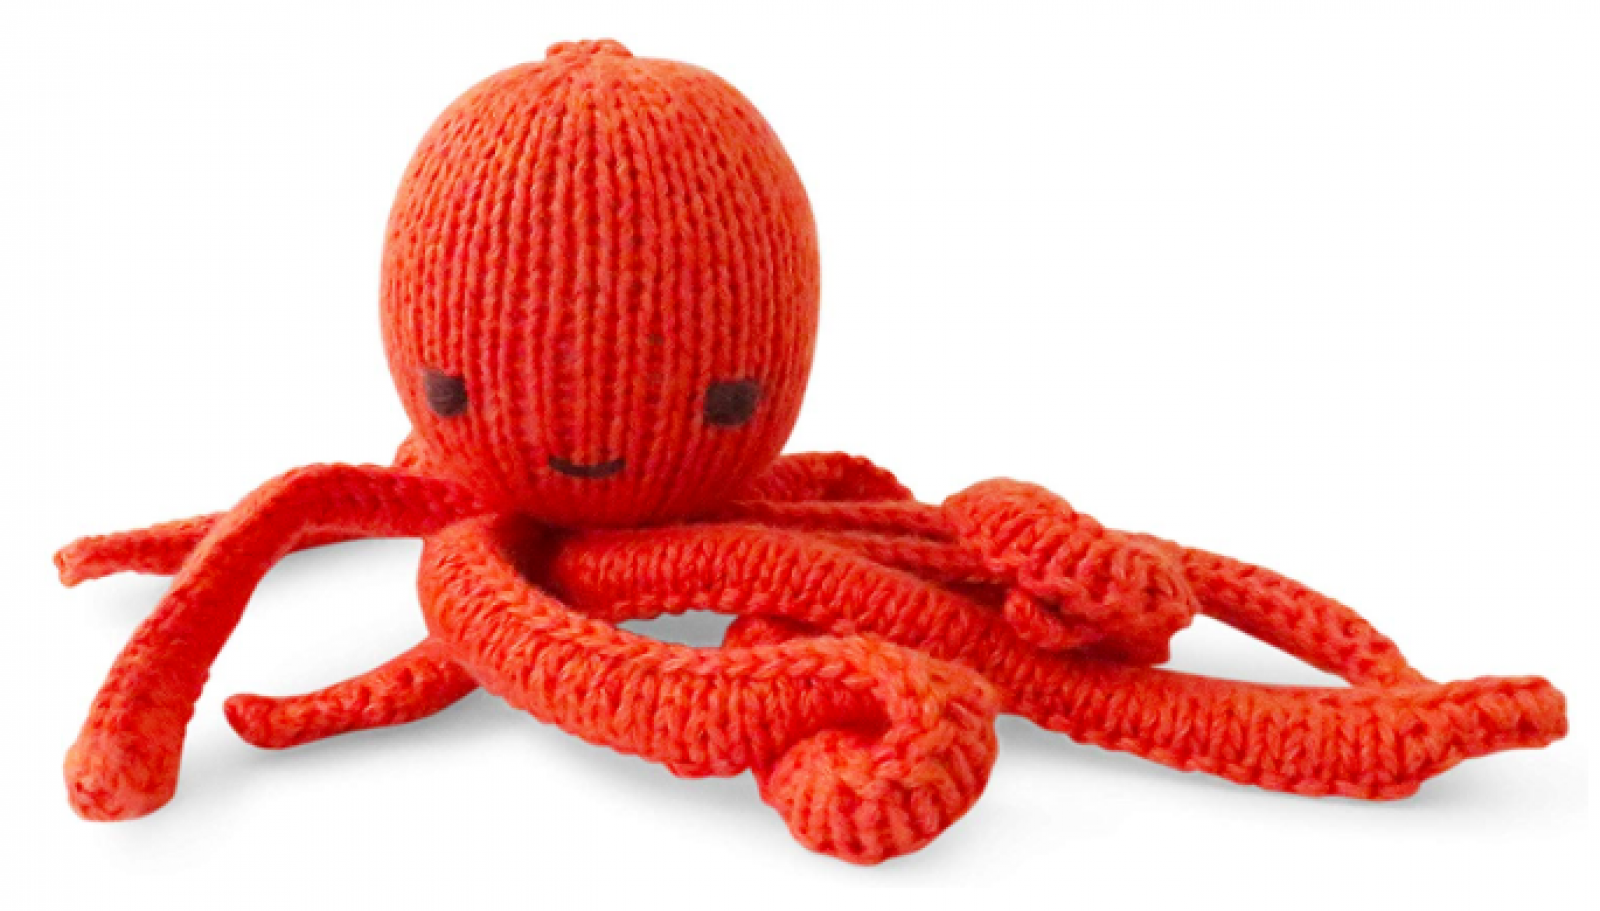 Orange Octopus Hand Knitted Soft Toy Organic Cotton